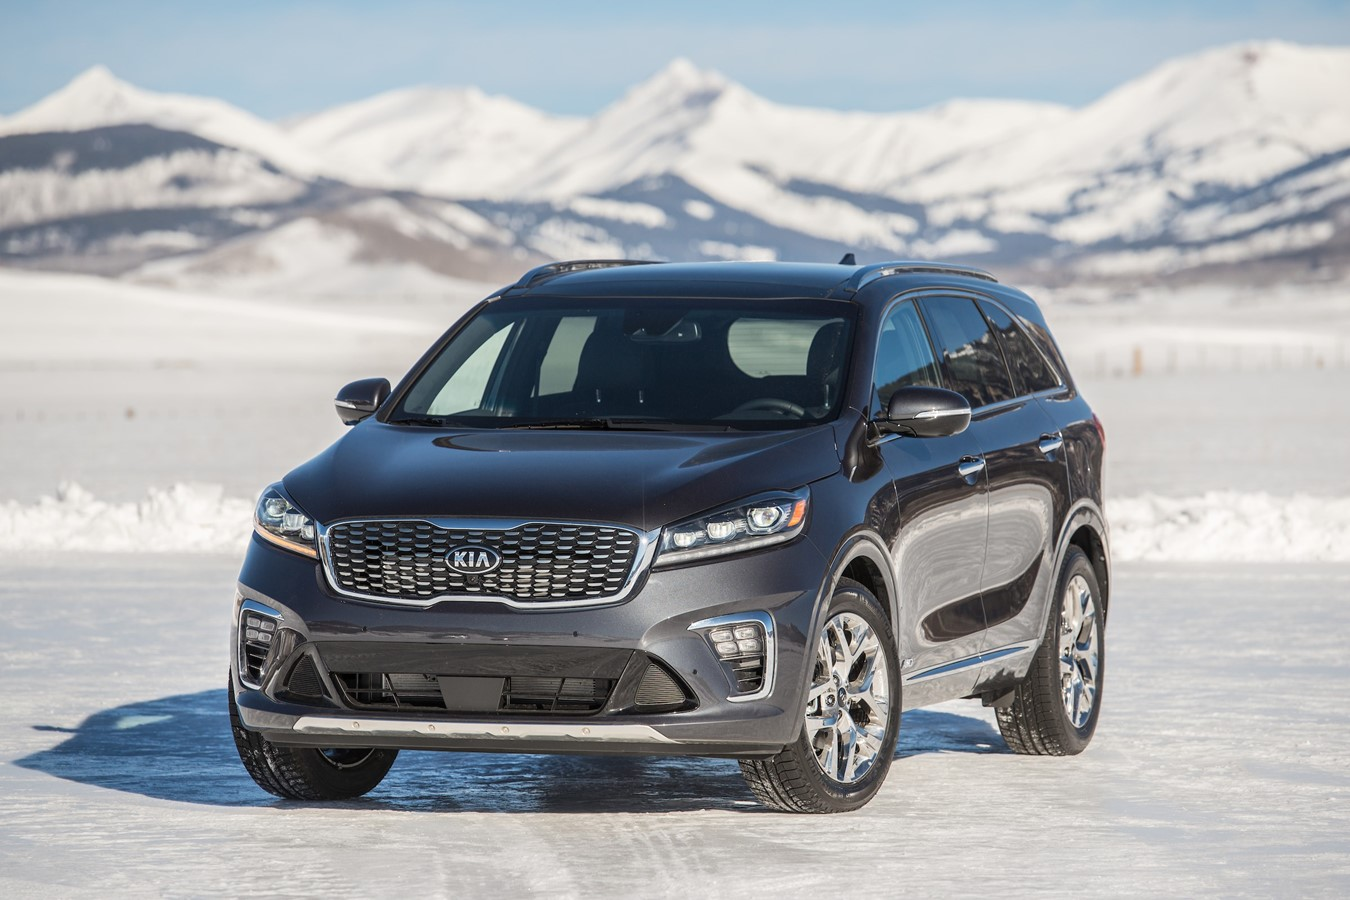 2019 Stinger and 2020 Sorento Snow Driving - 1080 - Long version